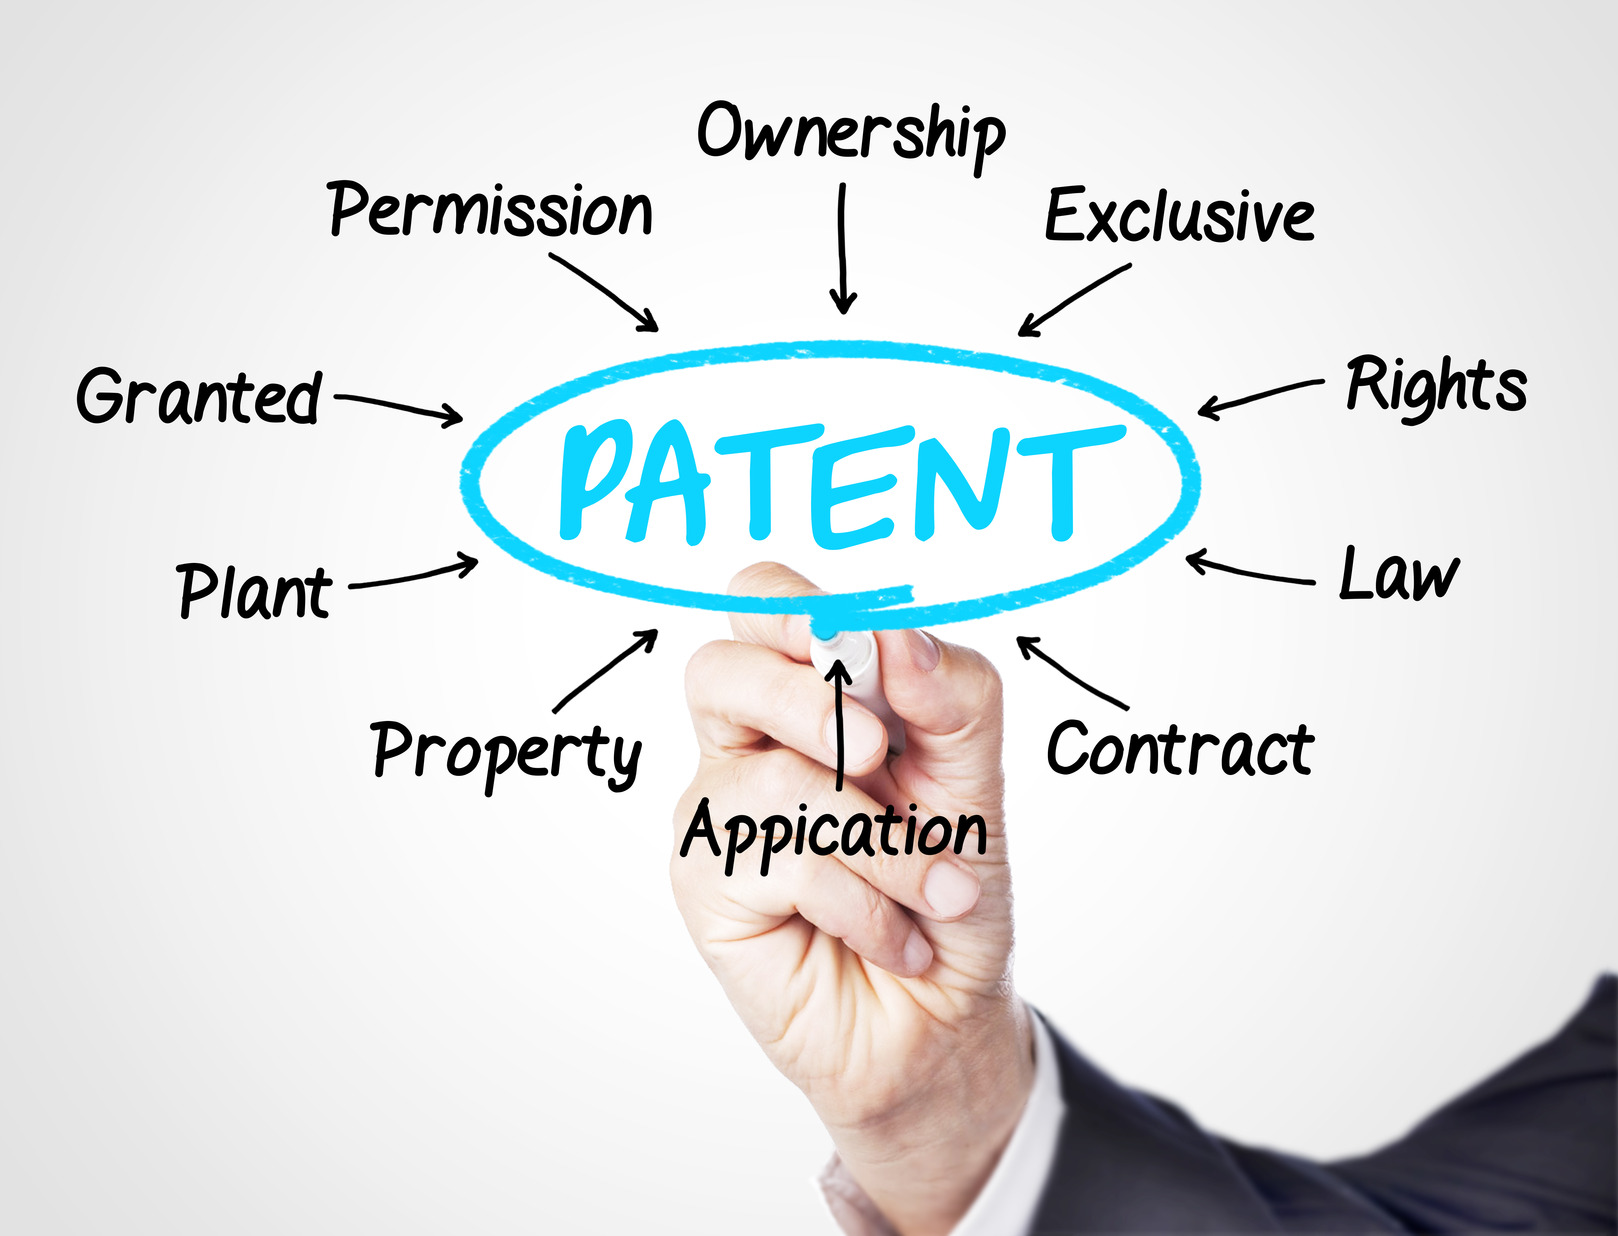 What is the purpose of patenting inventions